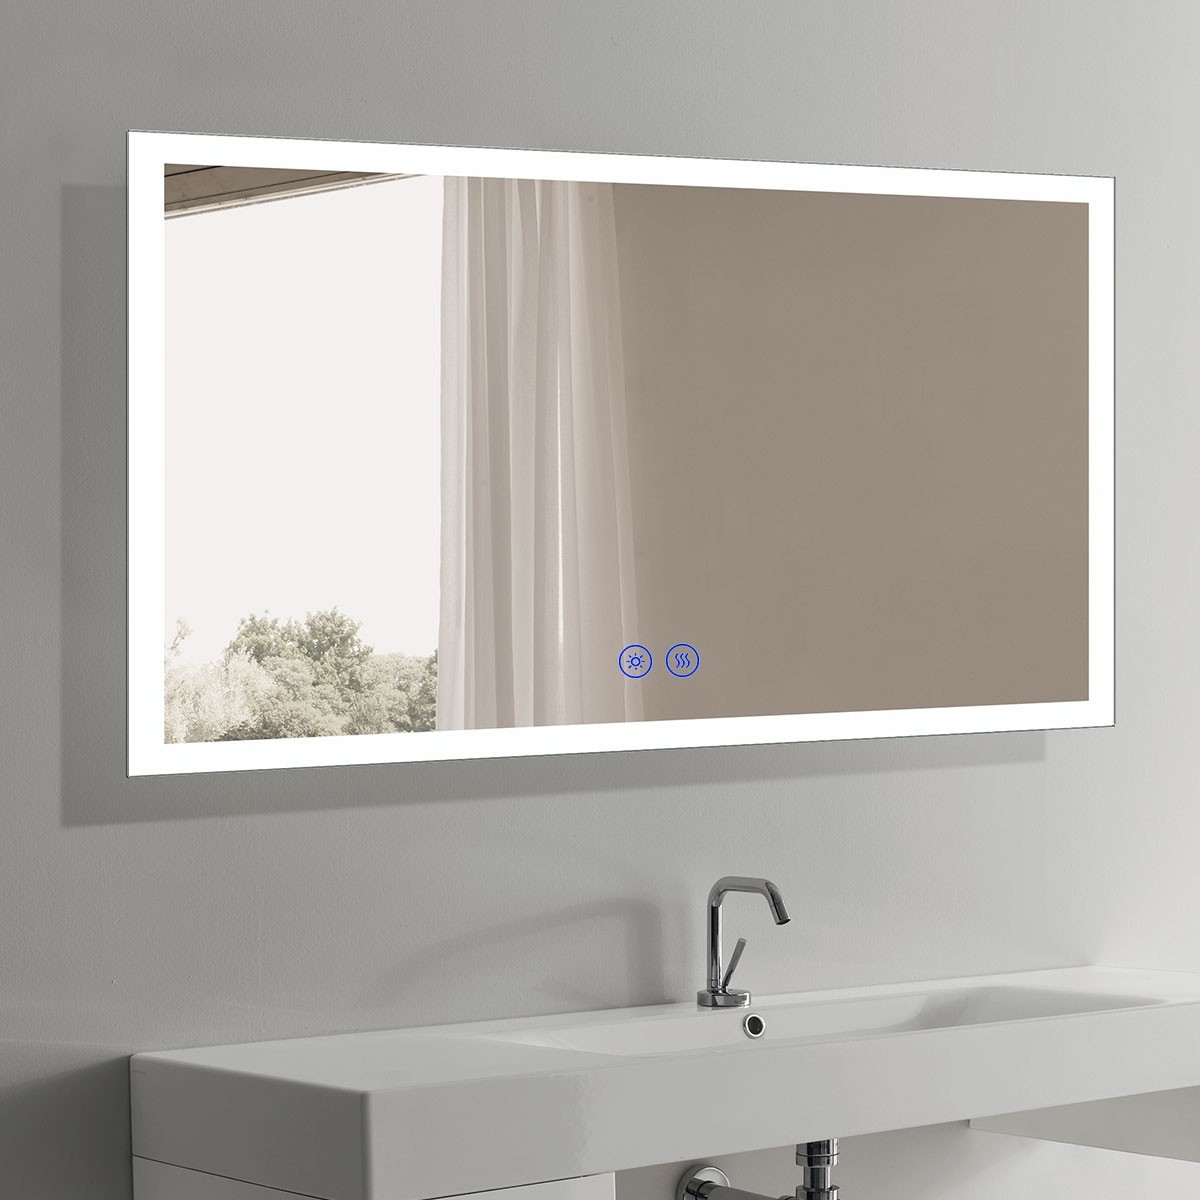 DECORAPORT 60 x 36 Inch LED Bathroom Mirror/Dress Mirror with Touch Button, Anti Fog, Dimmable, Vertical & Horizontal Mount (NT03-6036)